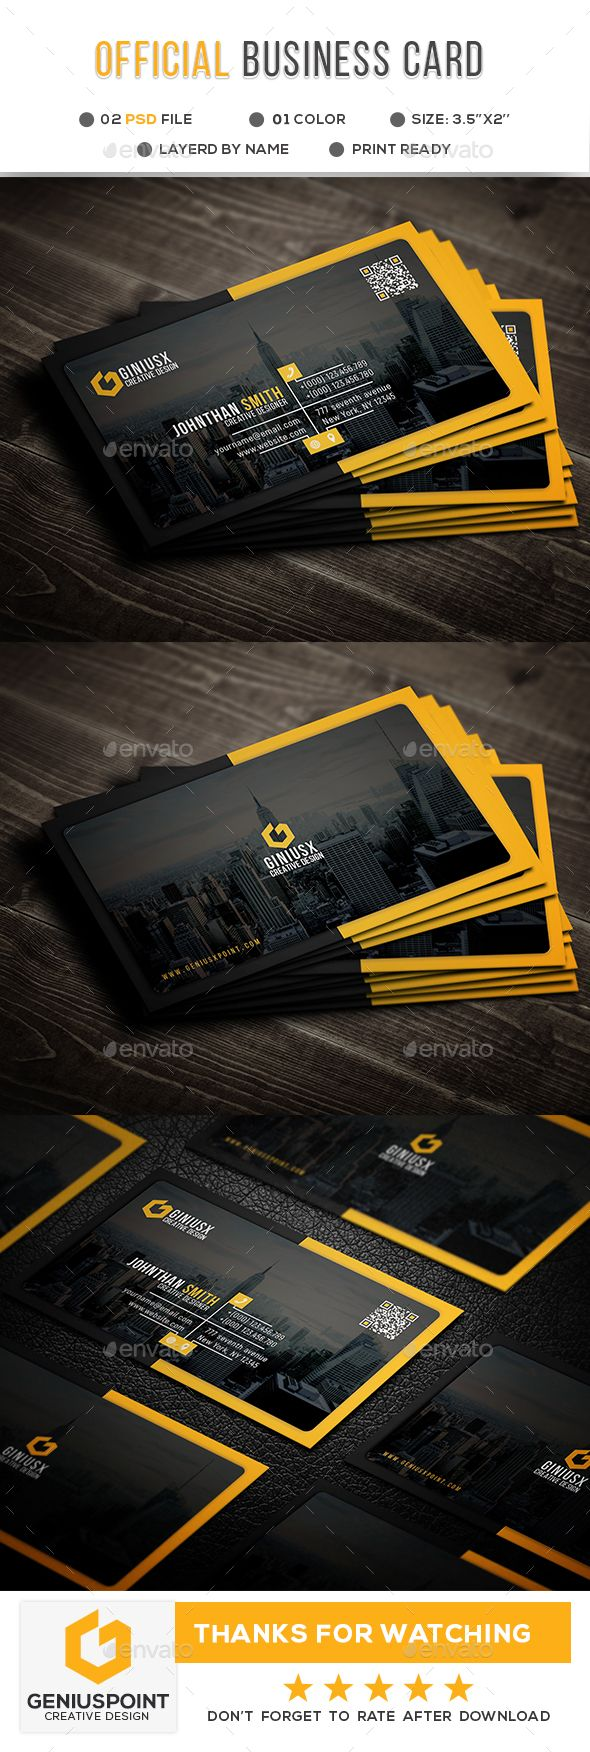 Official Business Card Template PSD